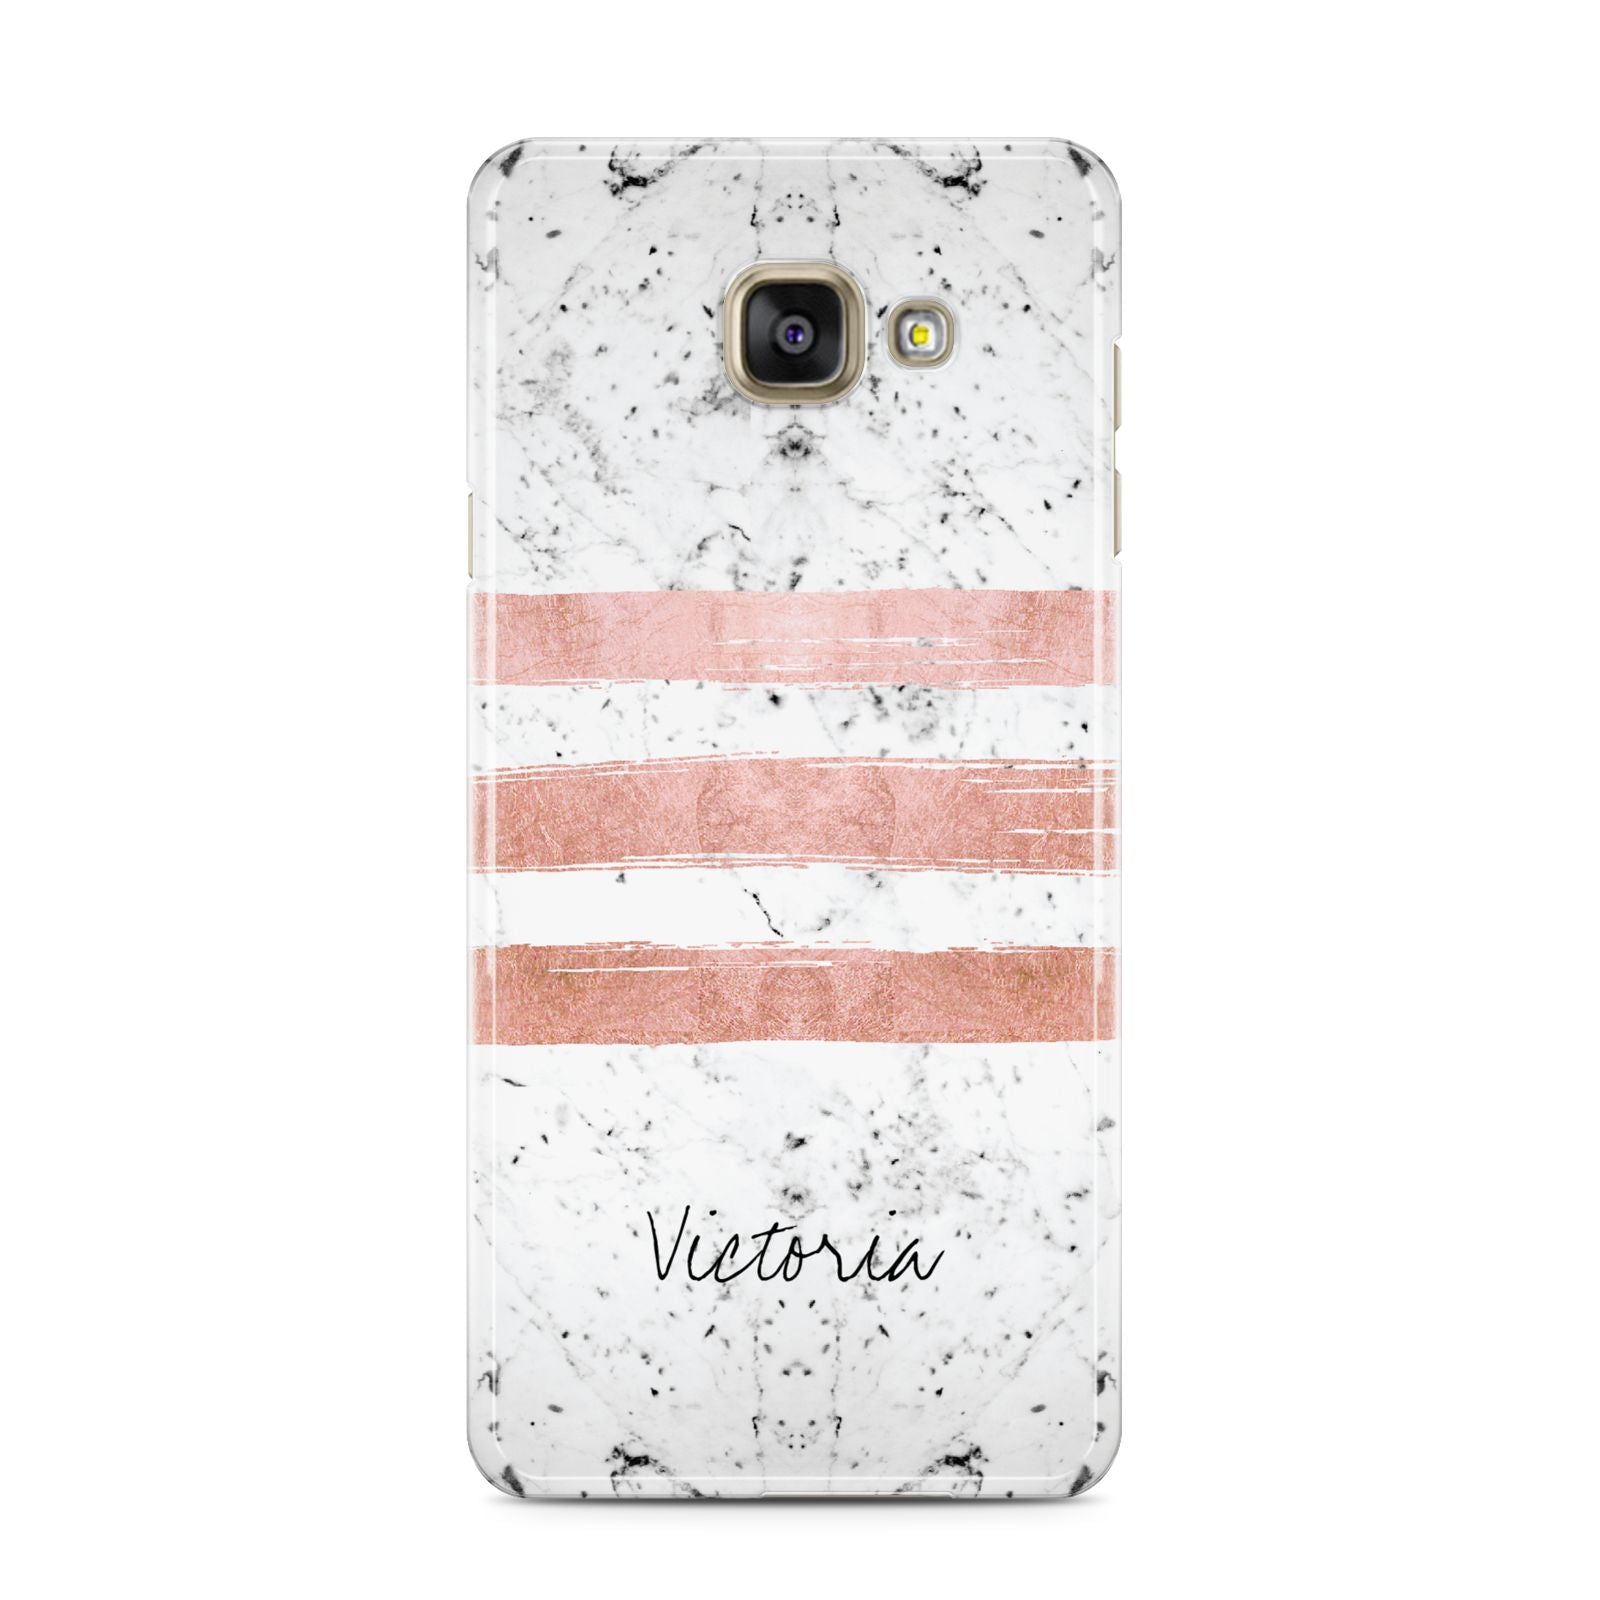 Personalised Rose Gold Brush Marble Initial Samsung Galaxy A3 2016 Case on gold phone